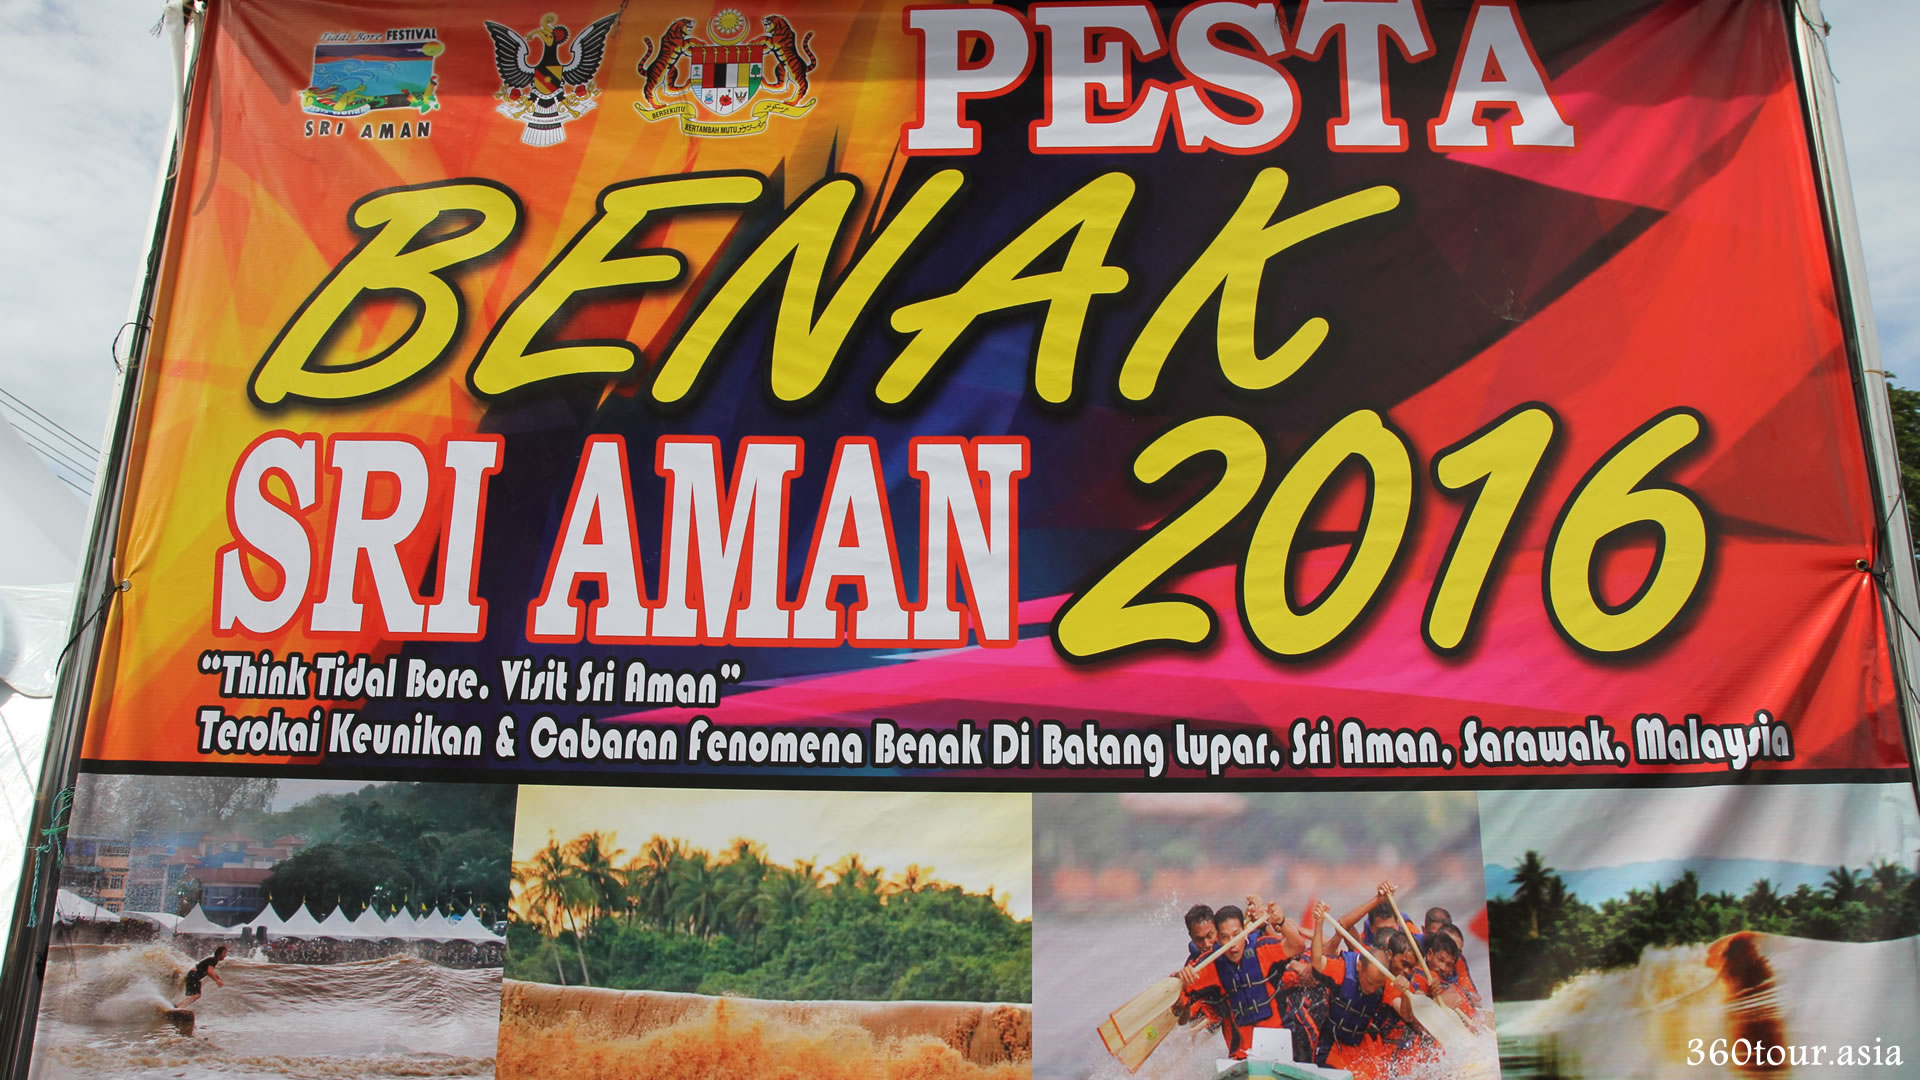 Pesta Benak Sri Aman 2016 (The Tidal Bore Festival)